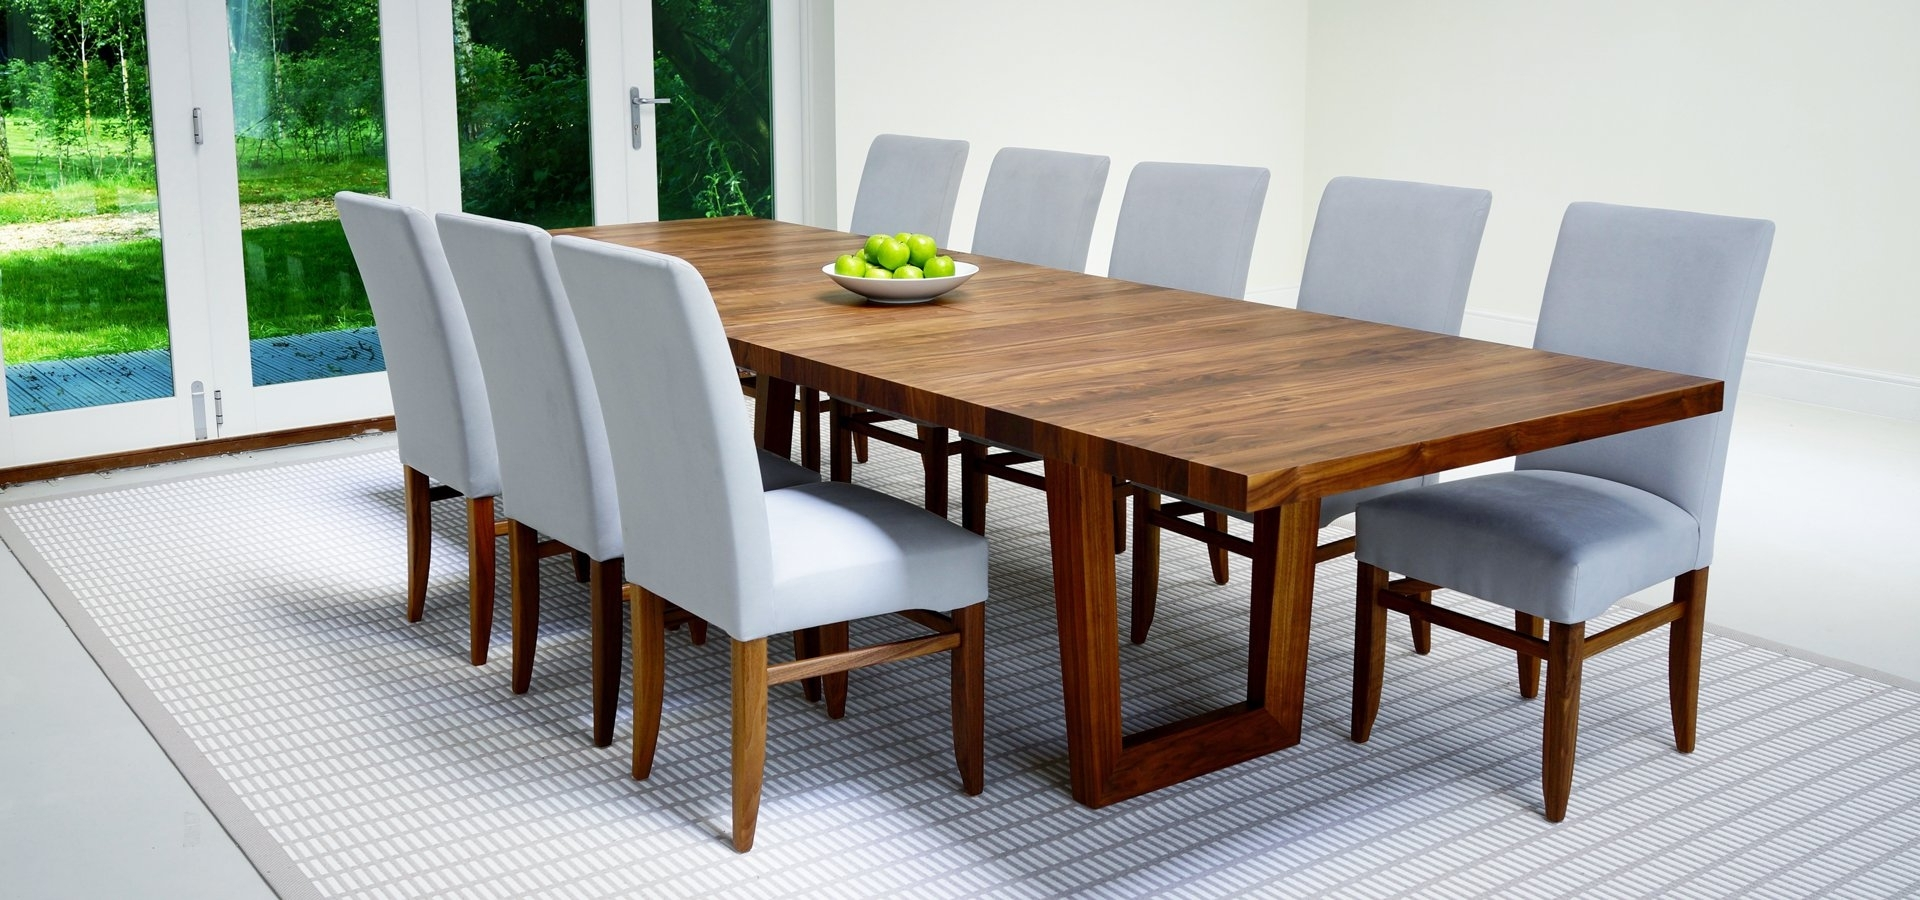 Best And Newest Contemporary Dining Tables & Furnitureberrydesign (View 3 of 25)